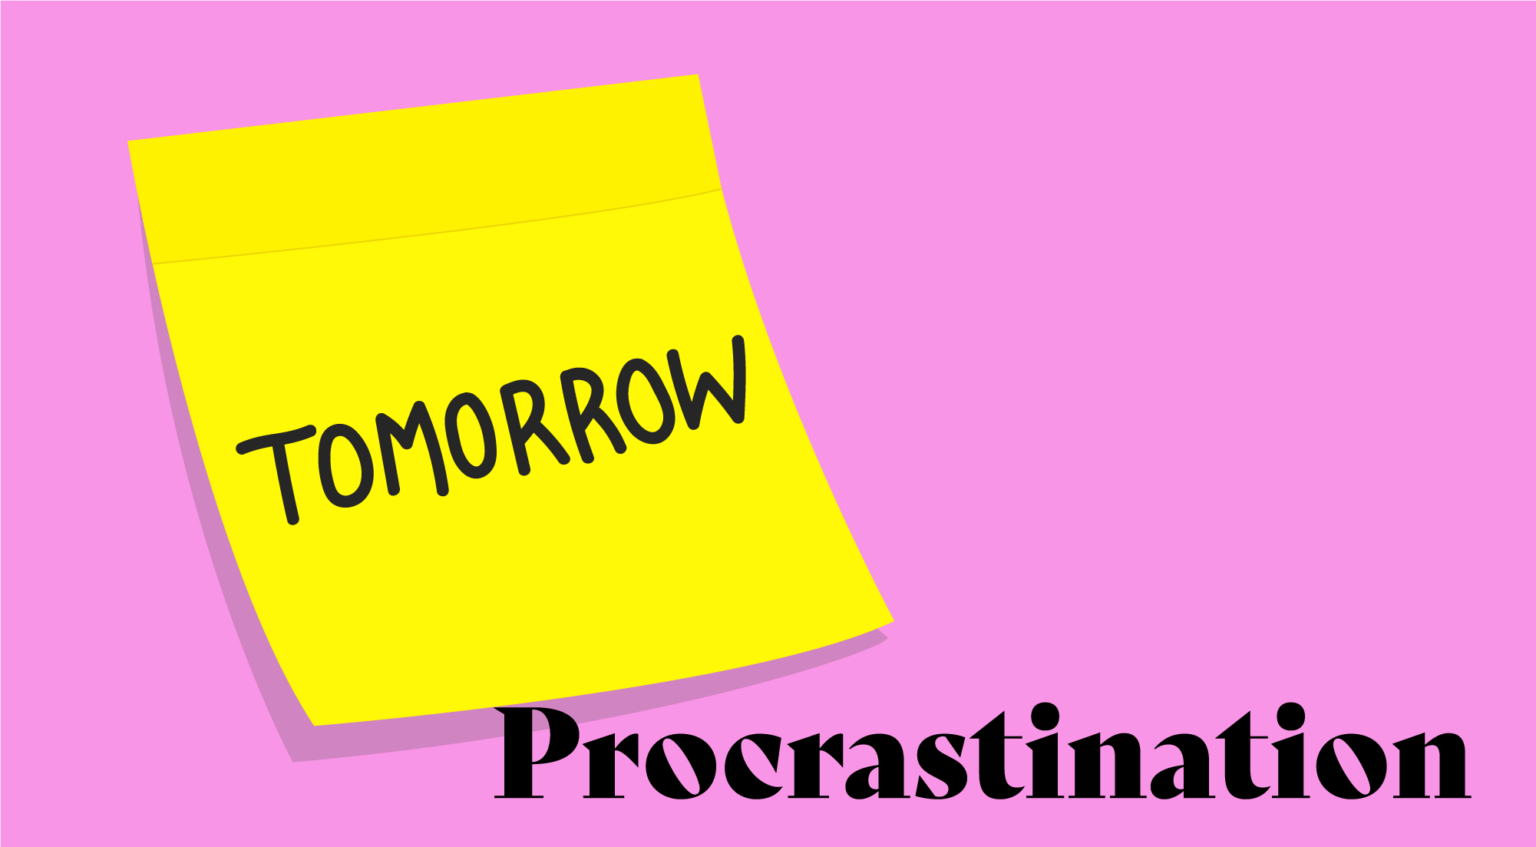 Yellow post-it note with 'tomorrow' written on it on pink background with word 'procrastination' in black.